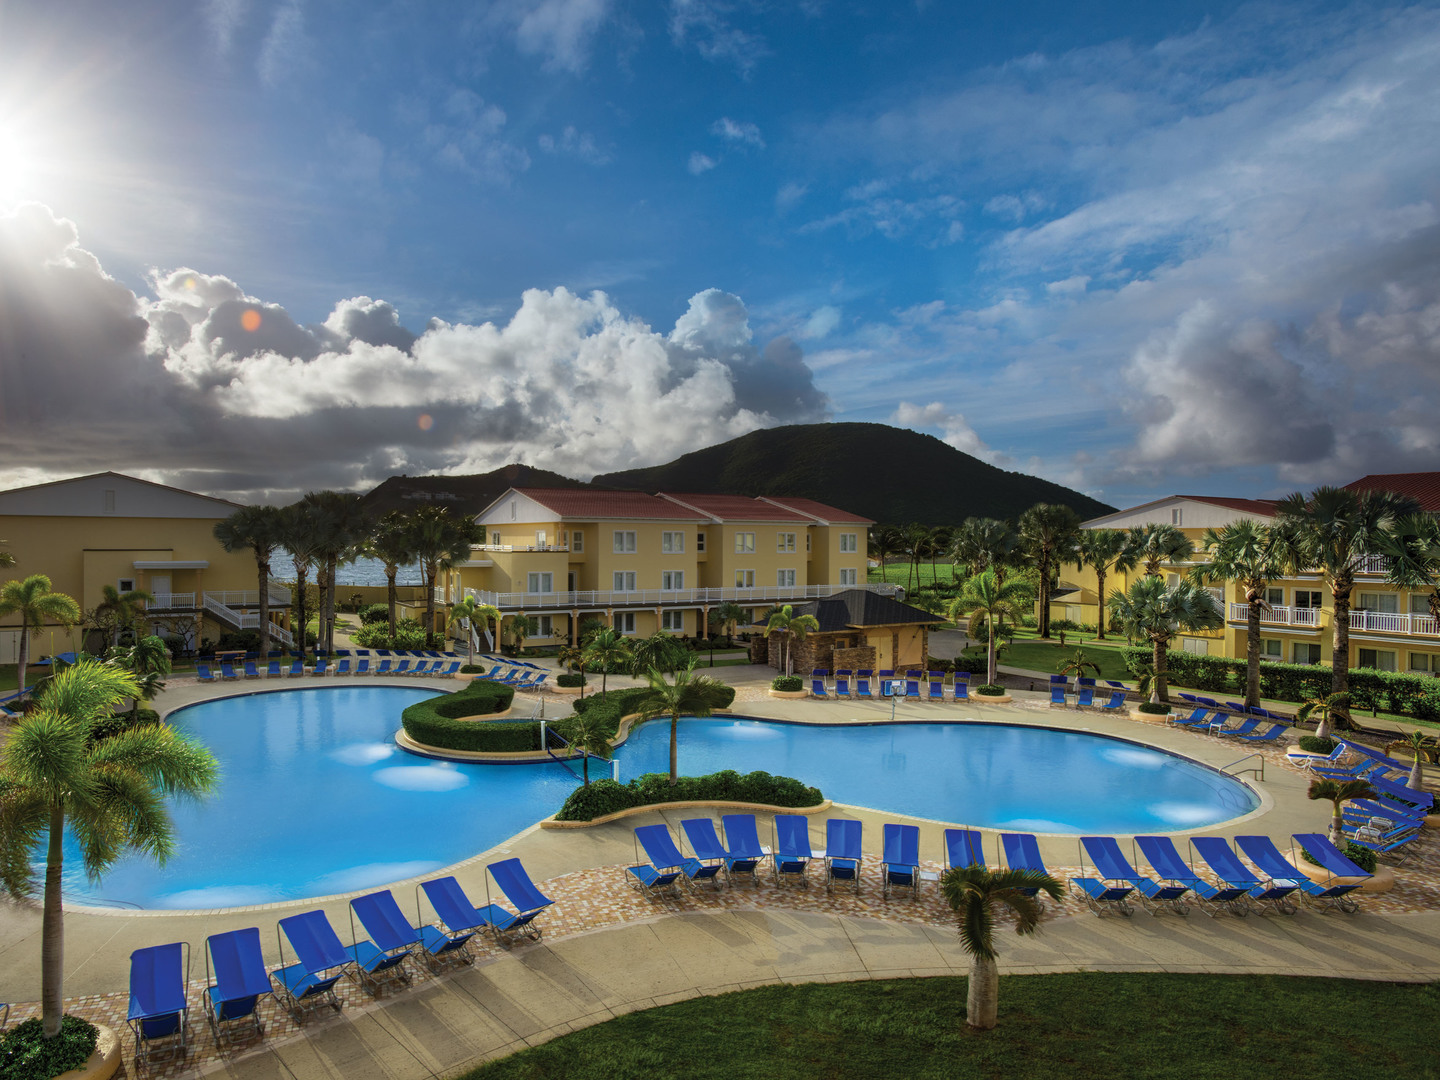 Marriott's St. Kitts Beach Club South Pool. Marriott's St. Kitts Beach Club is located in St. Kitts,  St. Kitts and Nevis.